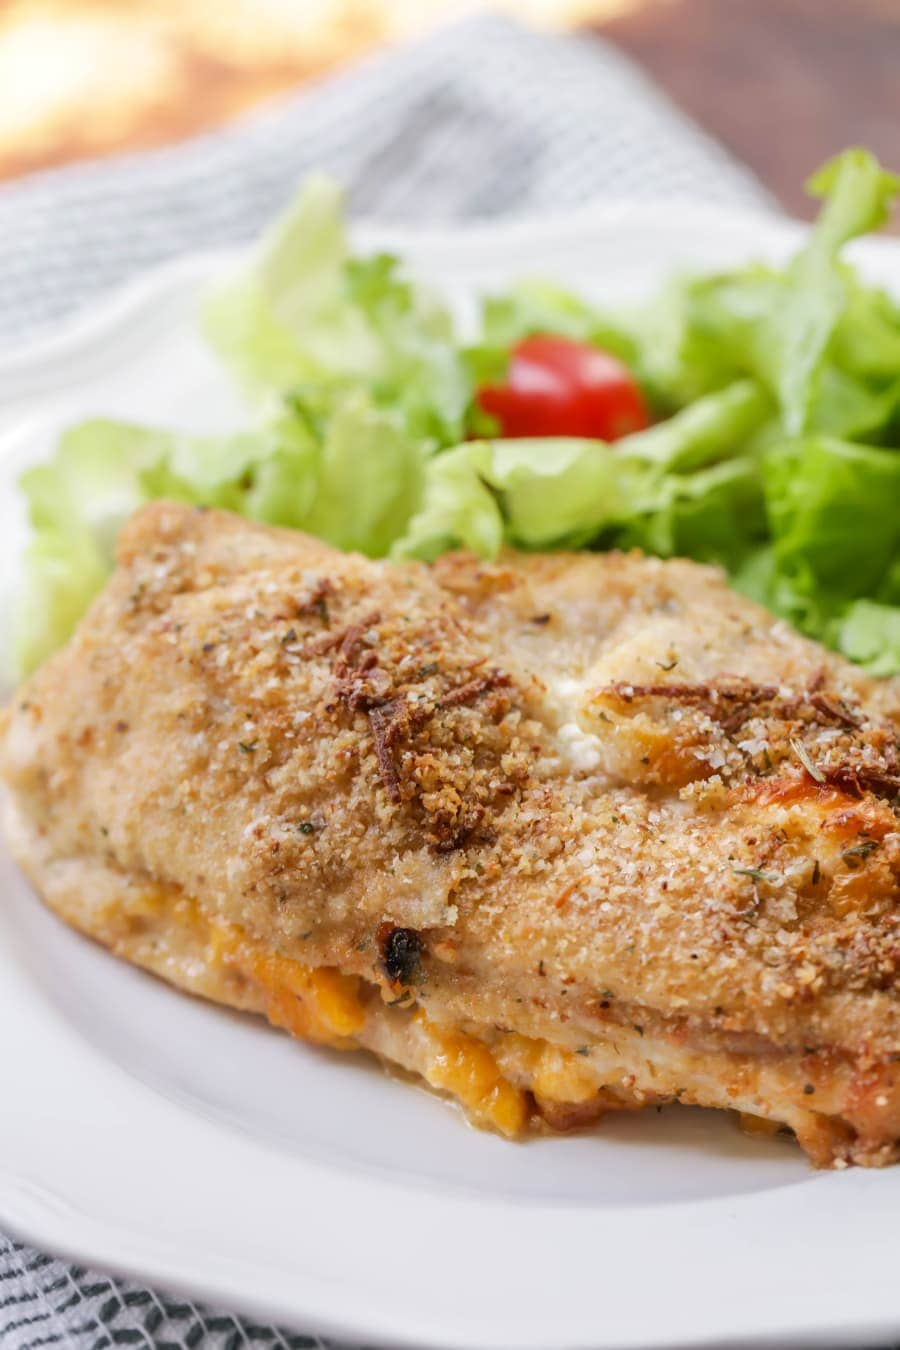 Garlic Lemon Double Stuffed Chicken - Crunchy on the outside and tender and creamy on the inside. Each breast is stuffed with cheddar cheese and cream cheese making it so flavorful and cheesy!!